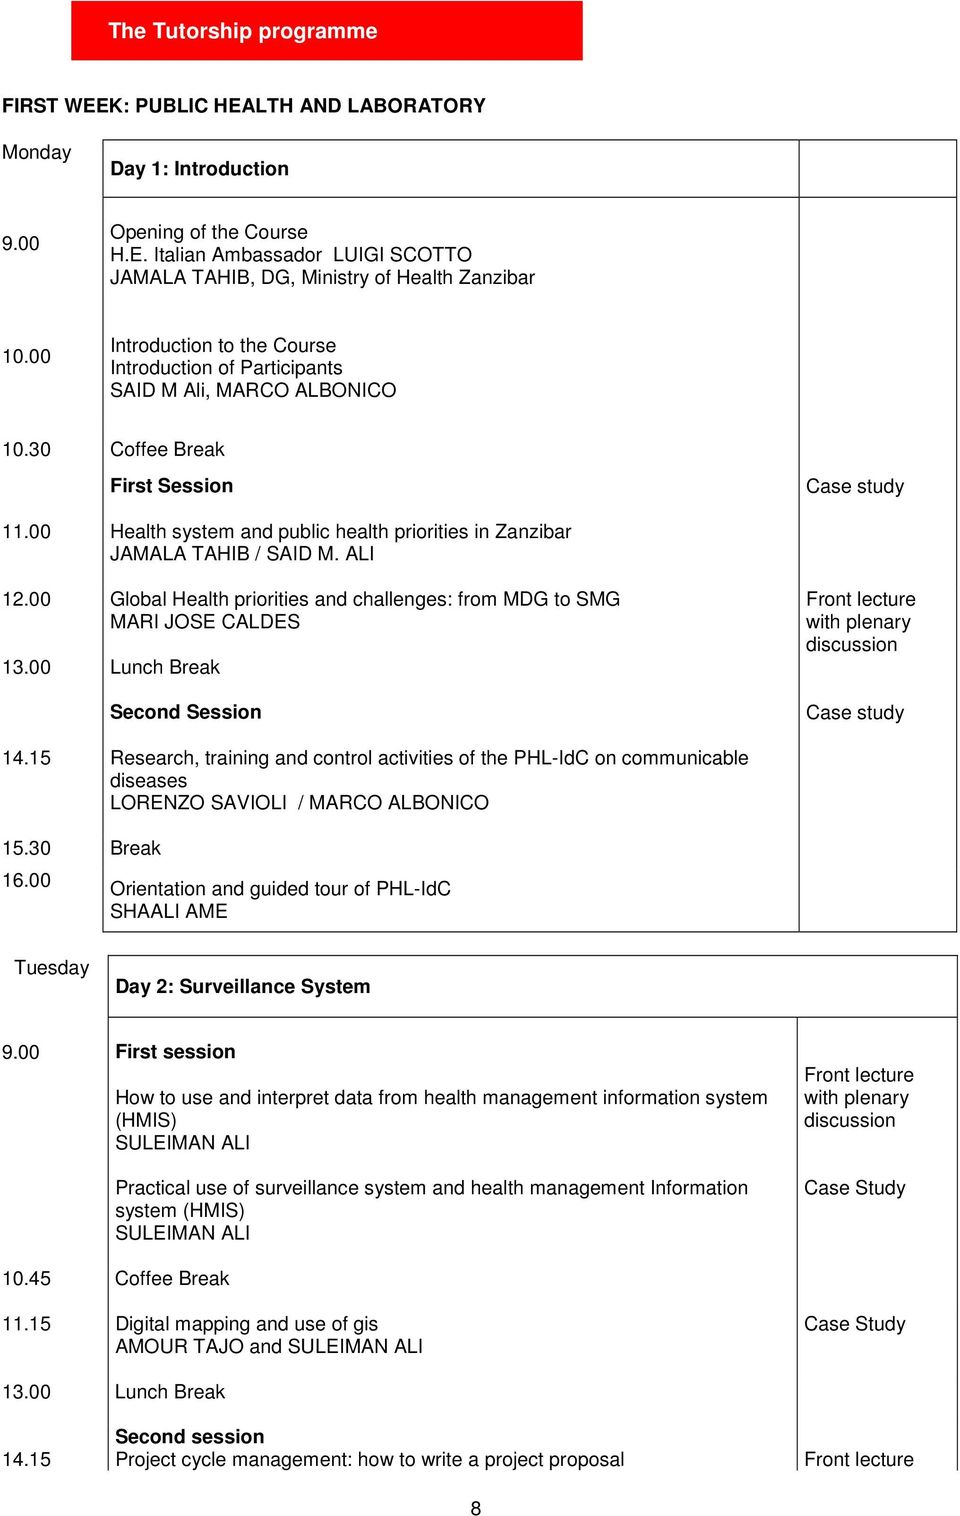 ALI 12.00 Global Health priorities and challenges: from MDG to SMG MARI JOSE CALDES Second Session Front lecture with plenary discussion 14.